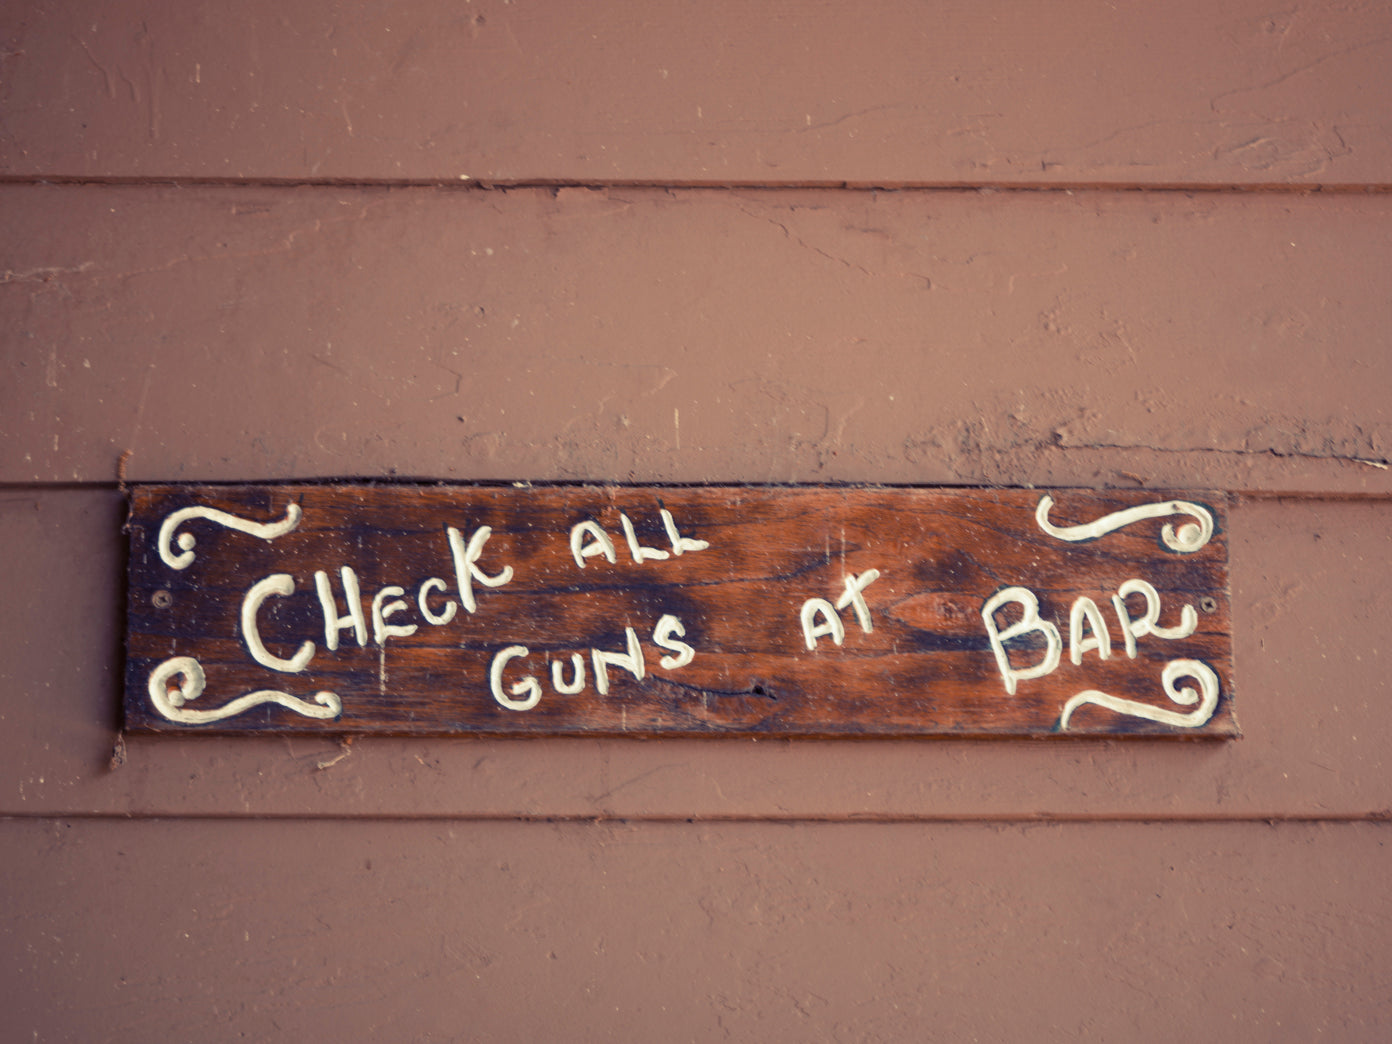 Check All Guns at the Bar